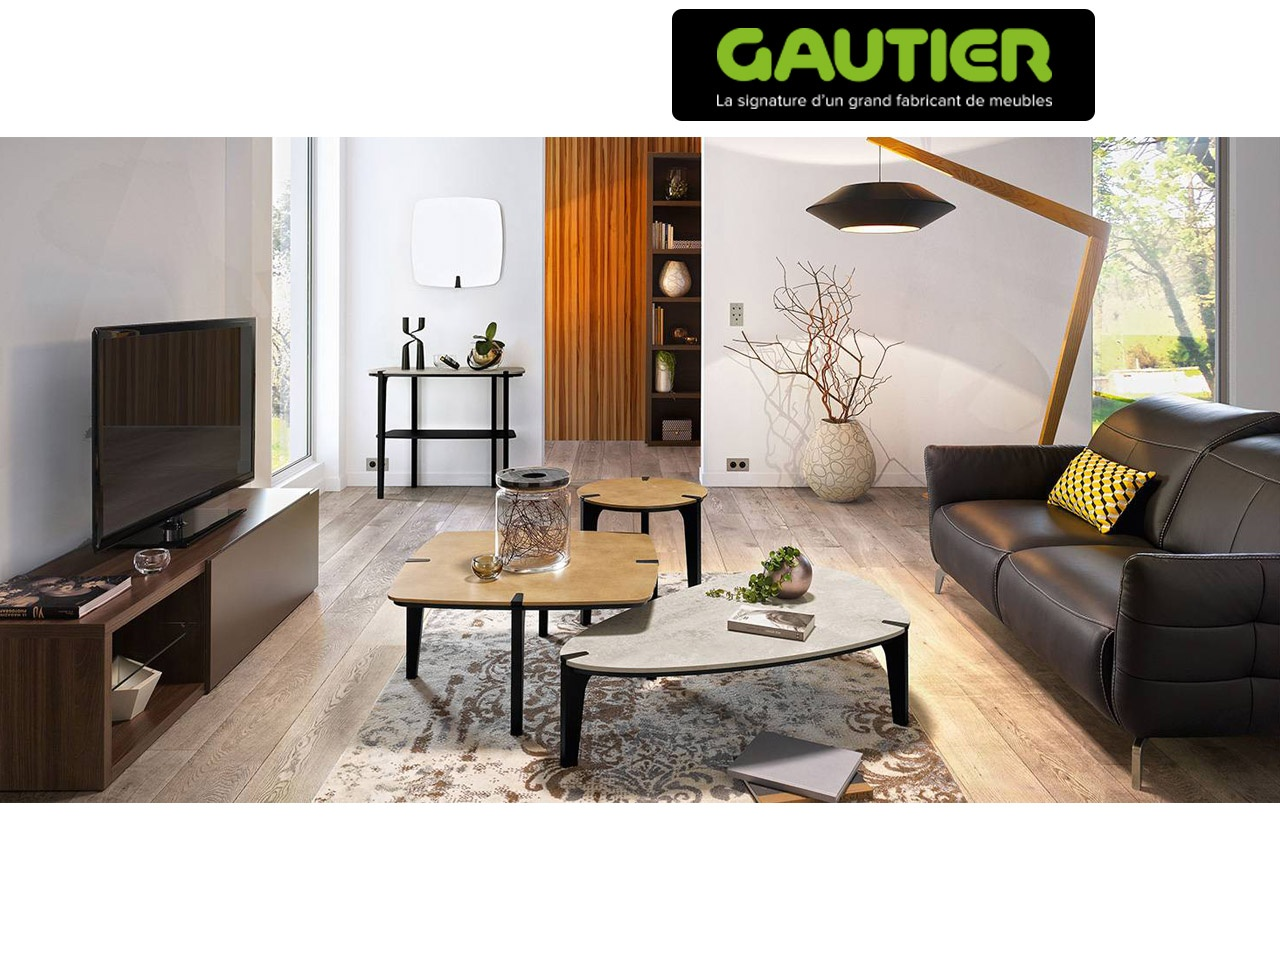 univers habitat march mobilier recherche de partenaires lyon pour gautier. Black Bedroom Furniture Sets. Home Design Ideas